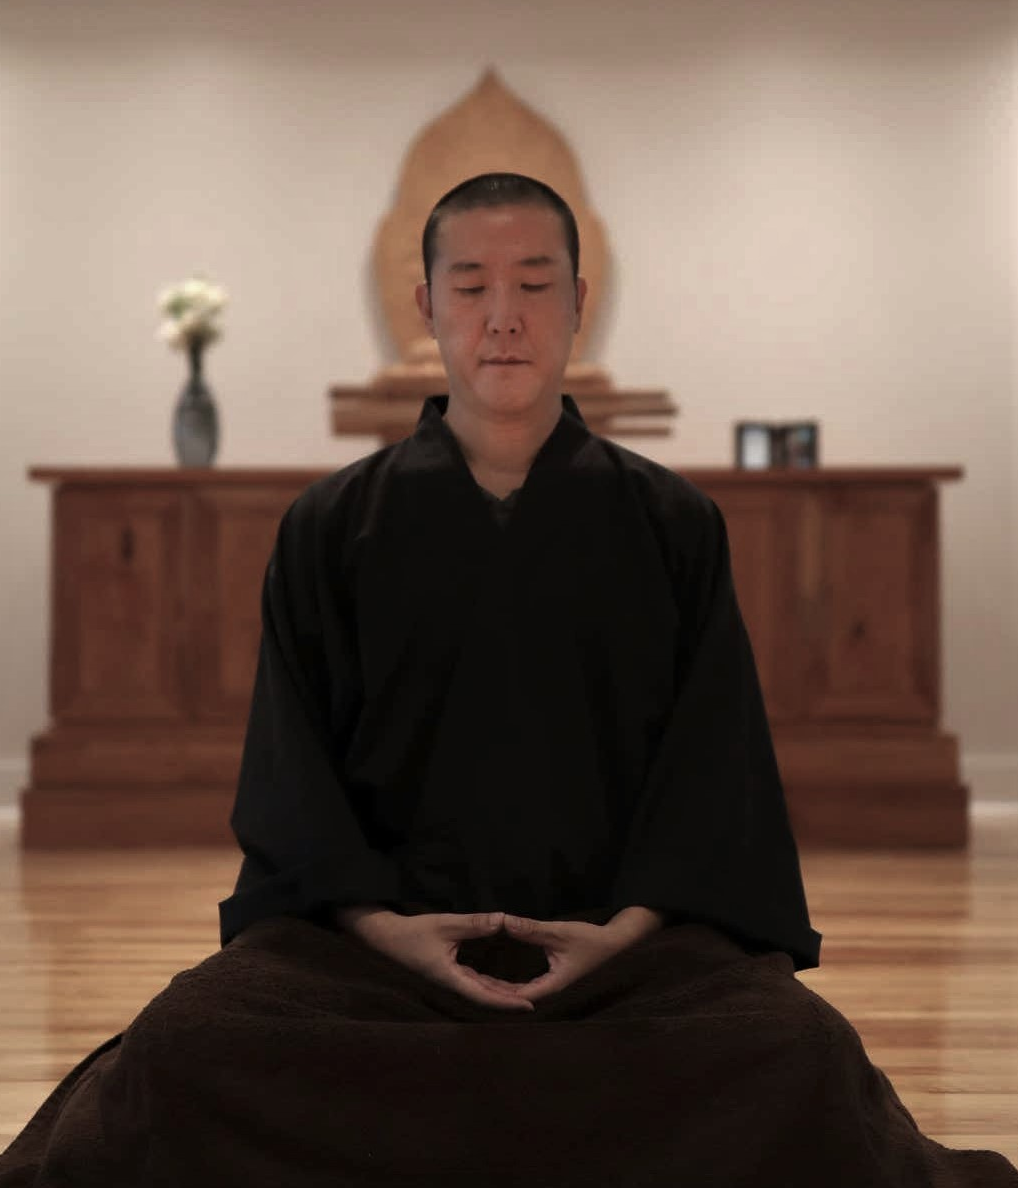 A picture of a man named Guo Gu in a sitting meditation posture